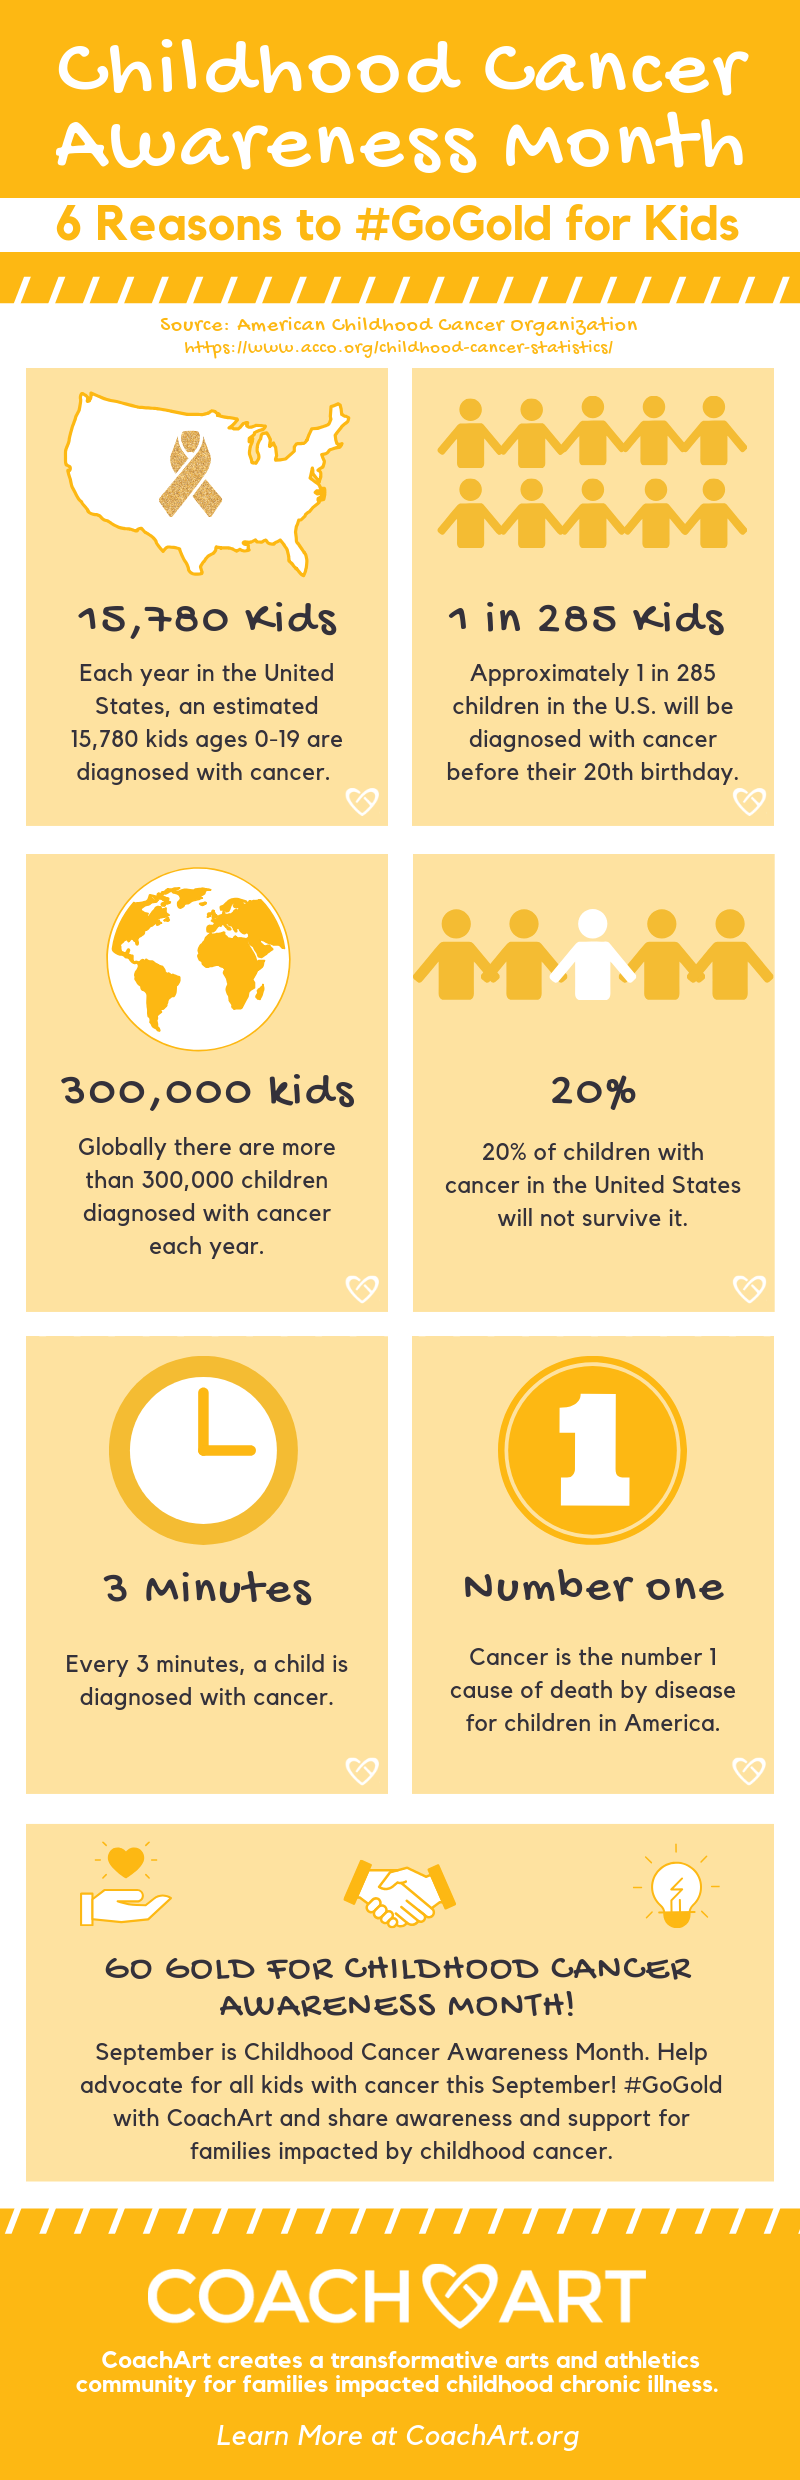 Childhood Cancer Awareness Month Infographic: 6 Reasons to Go Gold for Kids | CoachArt